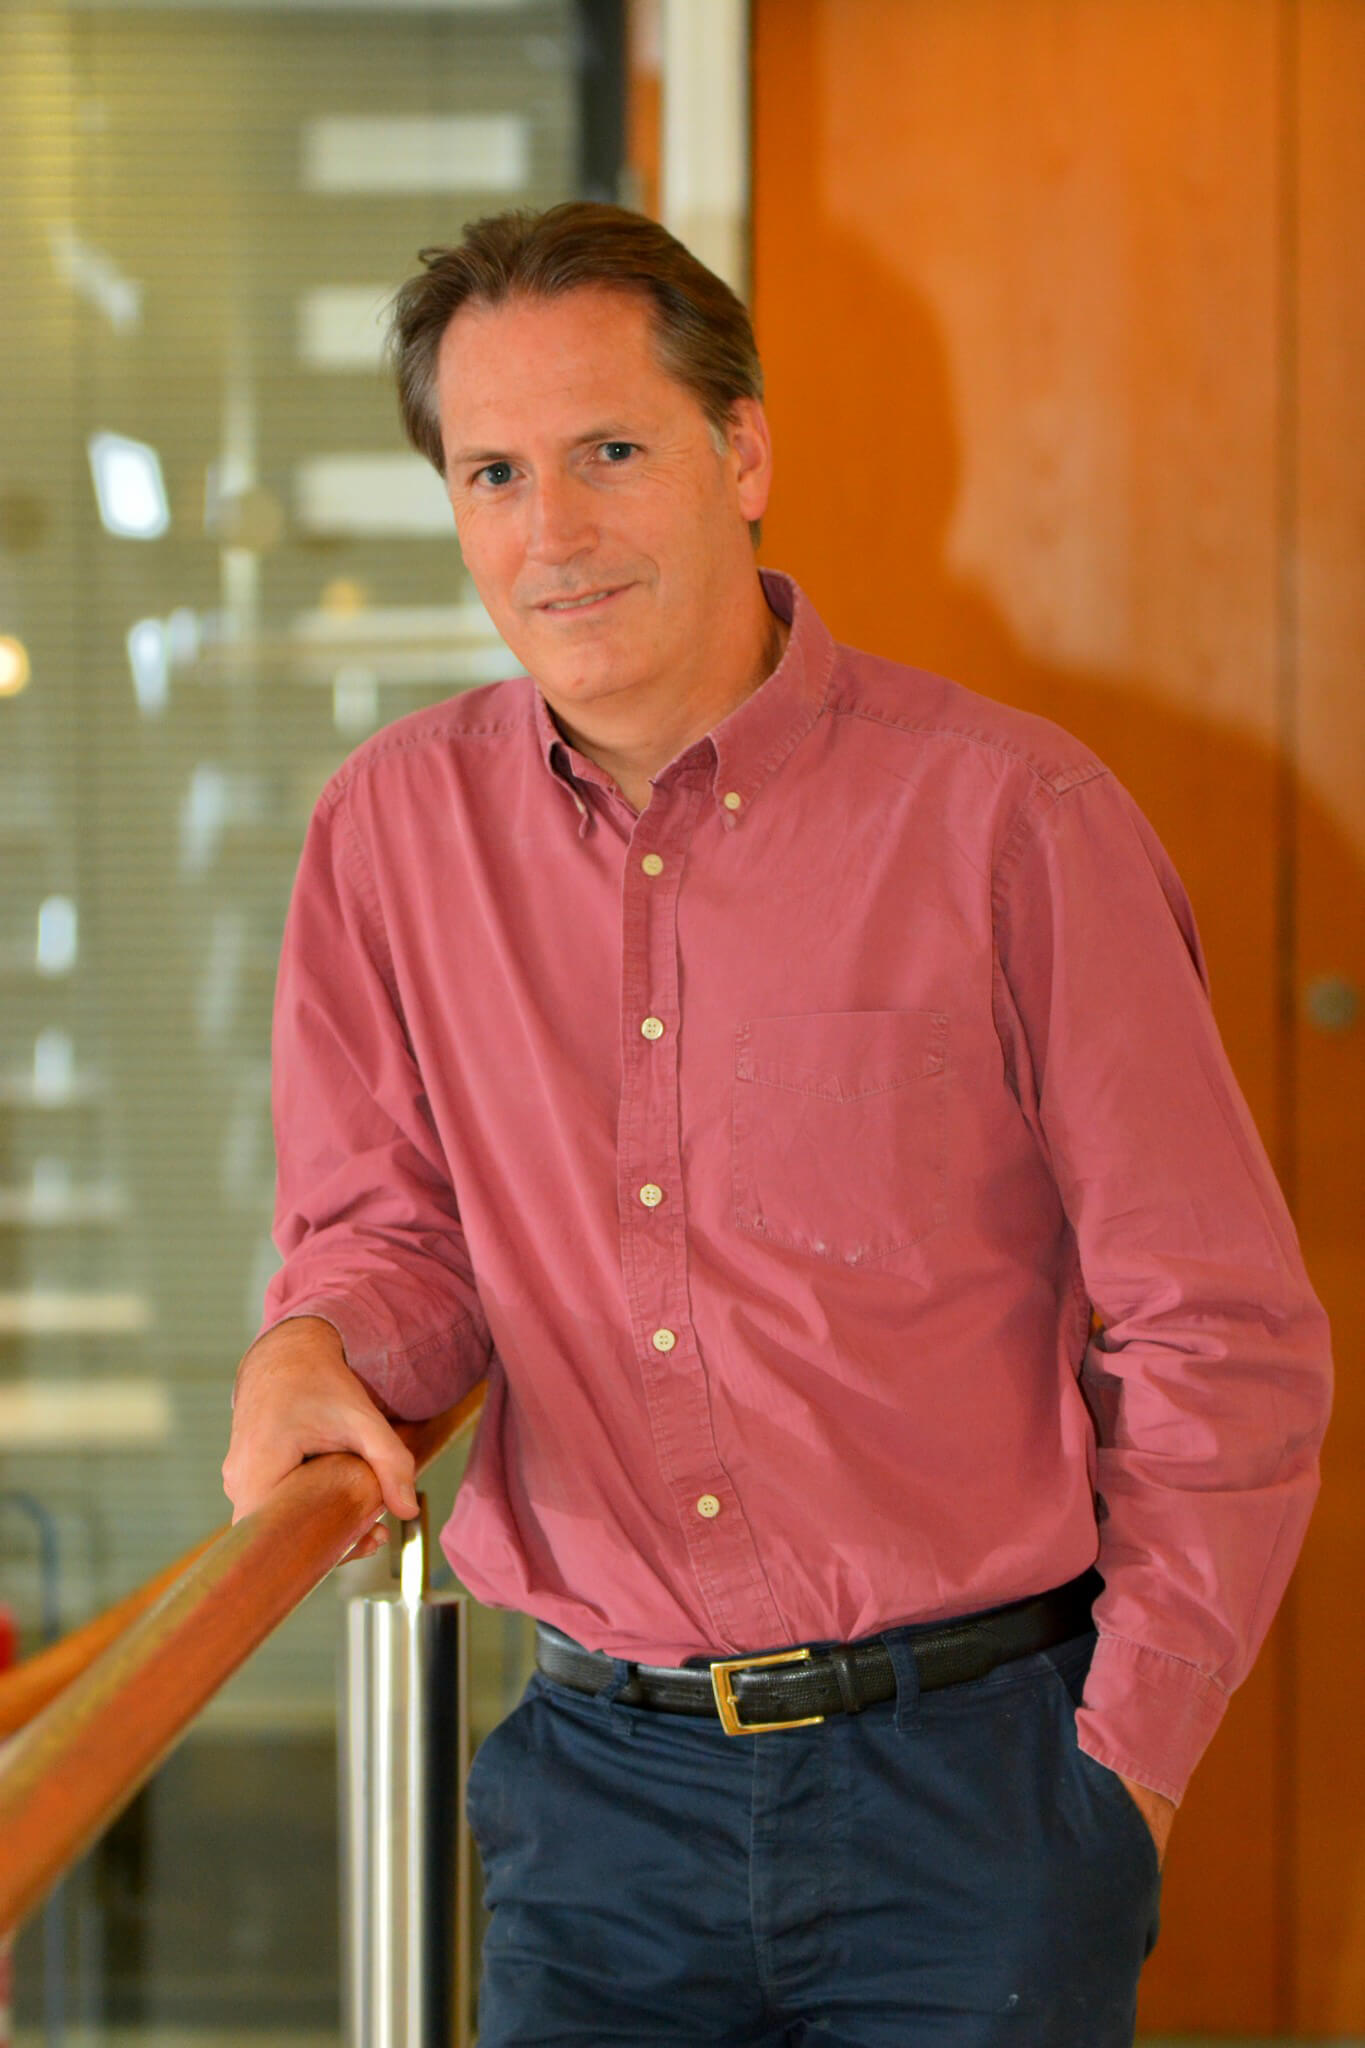 John Anderson who is researching ways to reduce the toxicity of neuroblastoma & osteosarcoma treatment